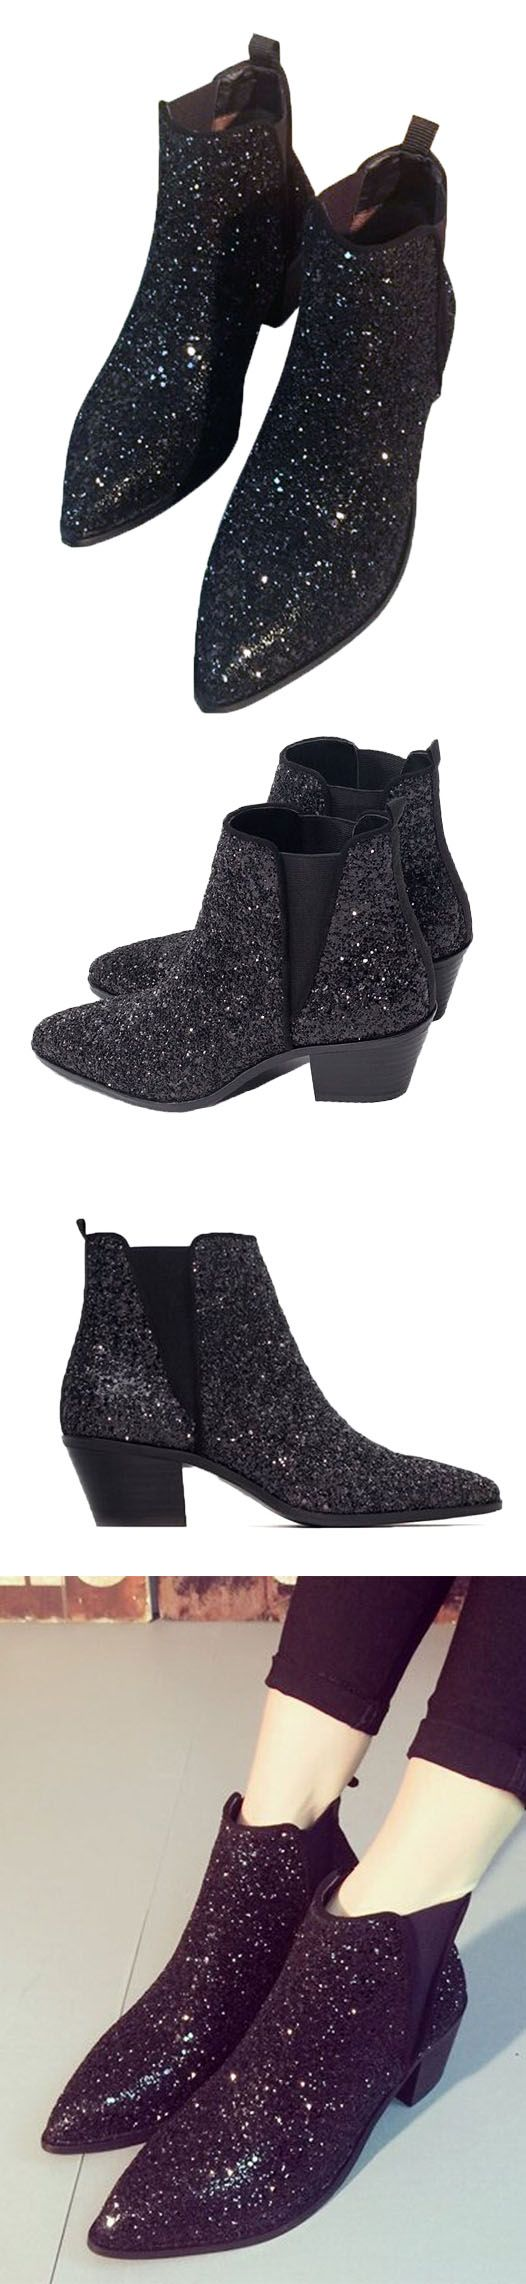 Sequin pointed ankle boots. Looks great in fall and winter seasons. Featuring your feet.